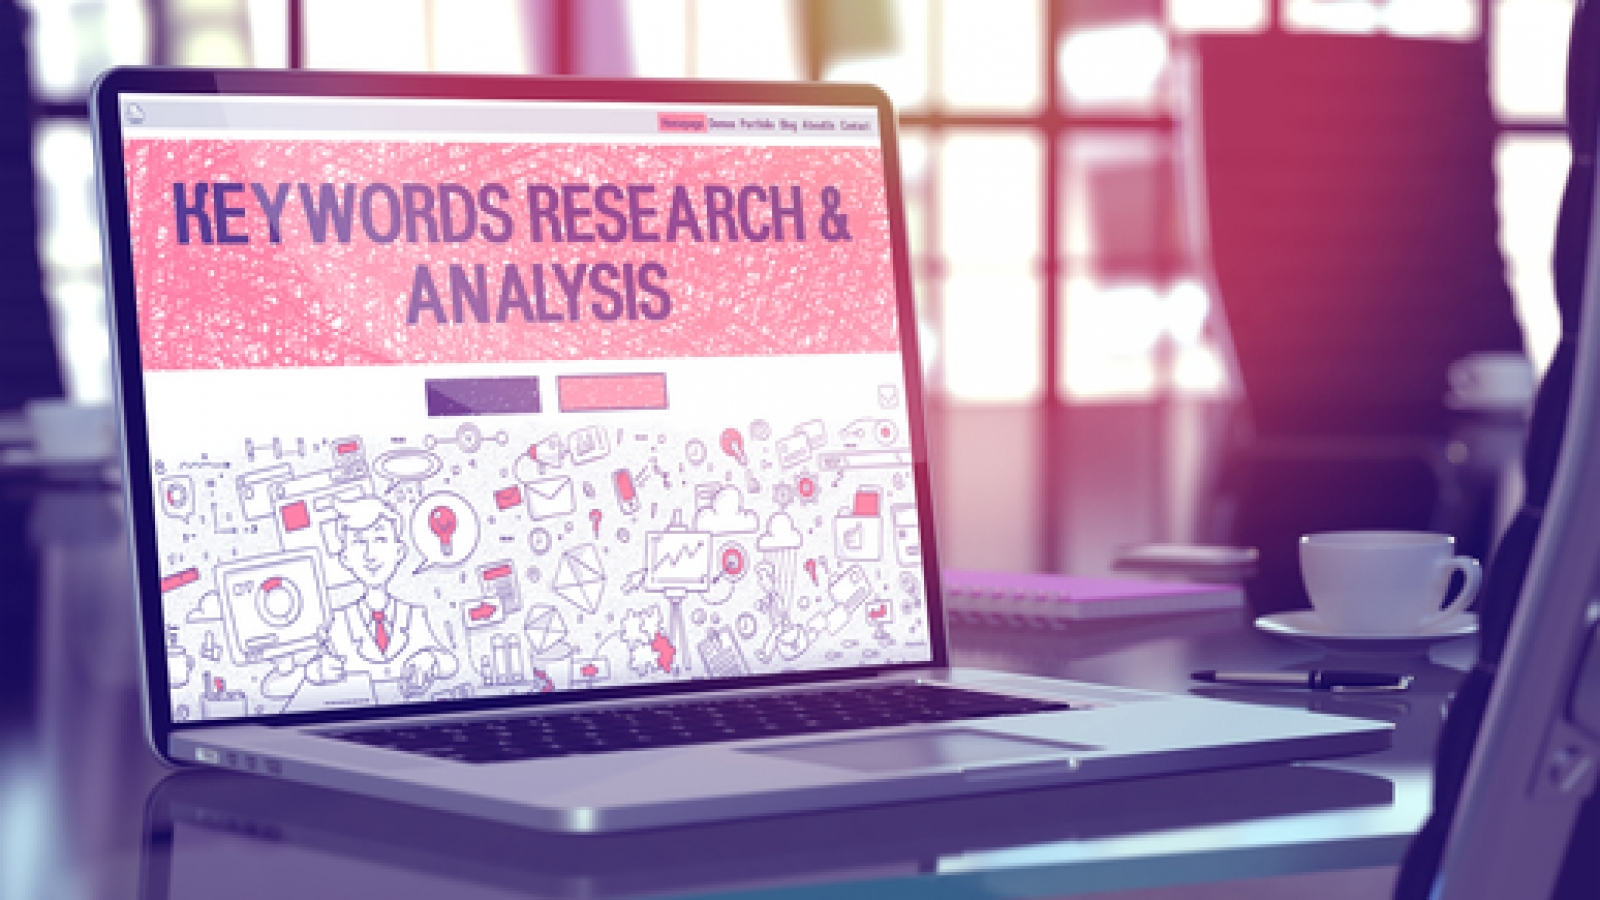 Laptop Screen with Keywords Research and Analysis Concept.